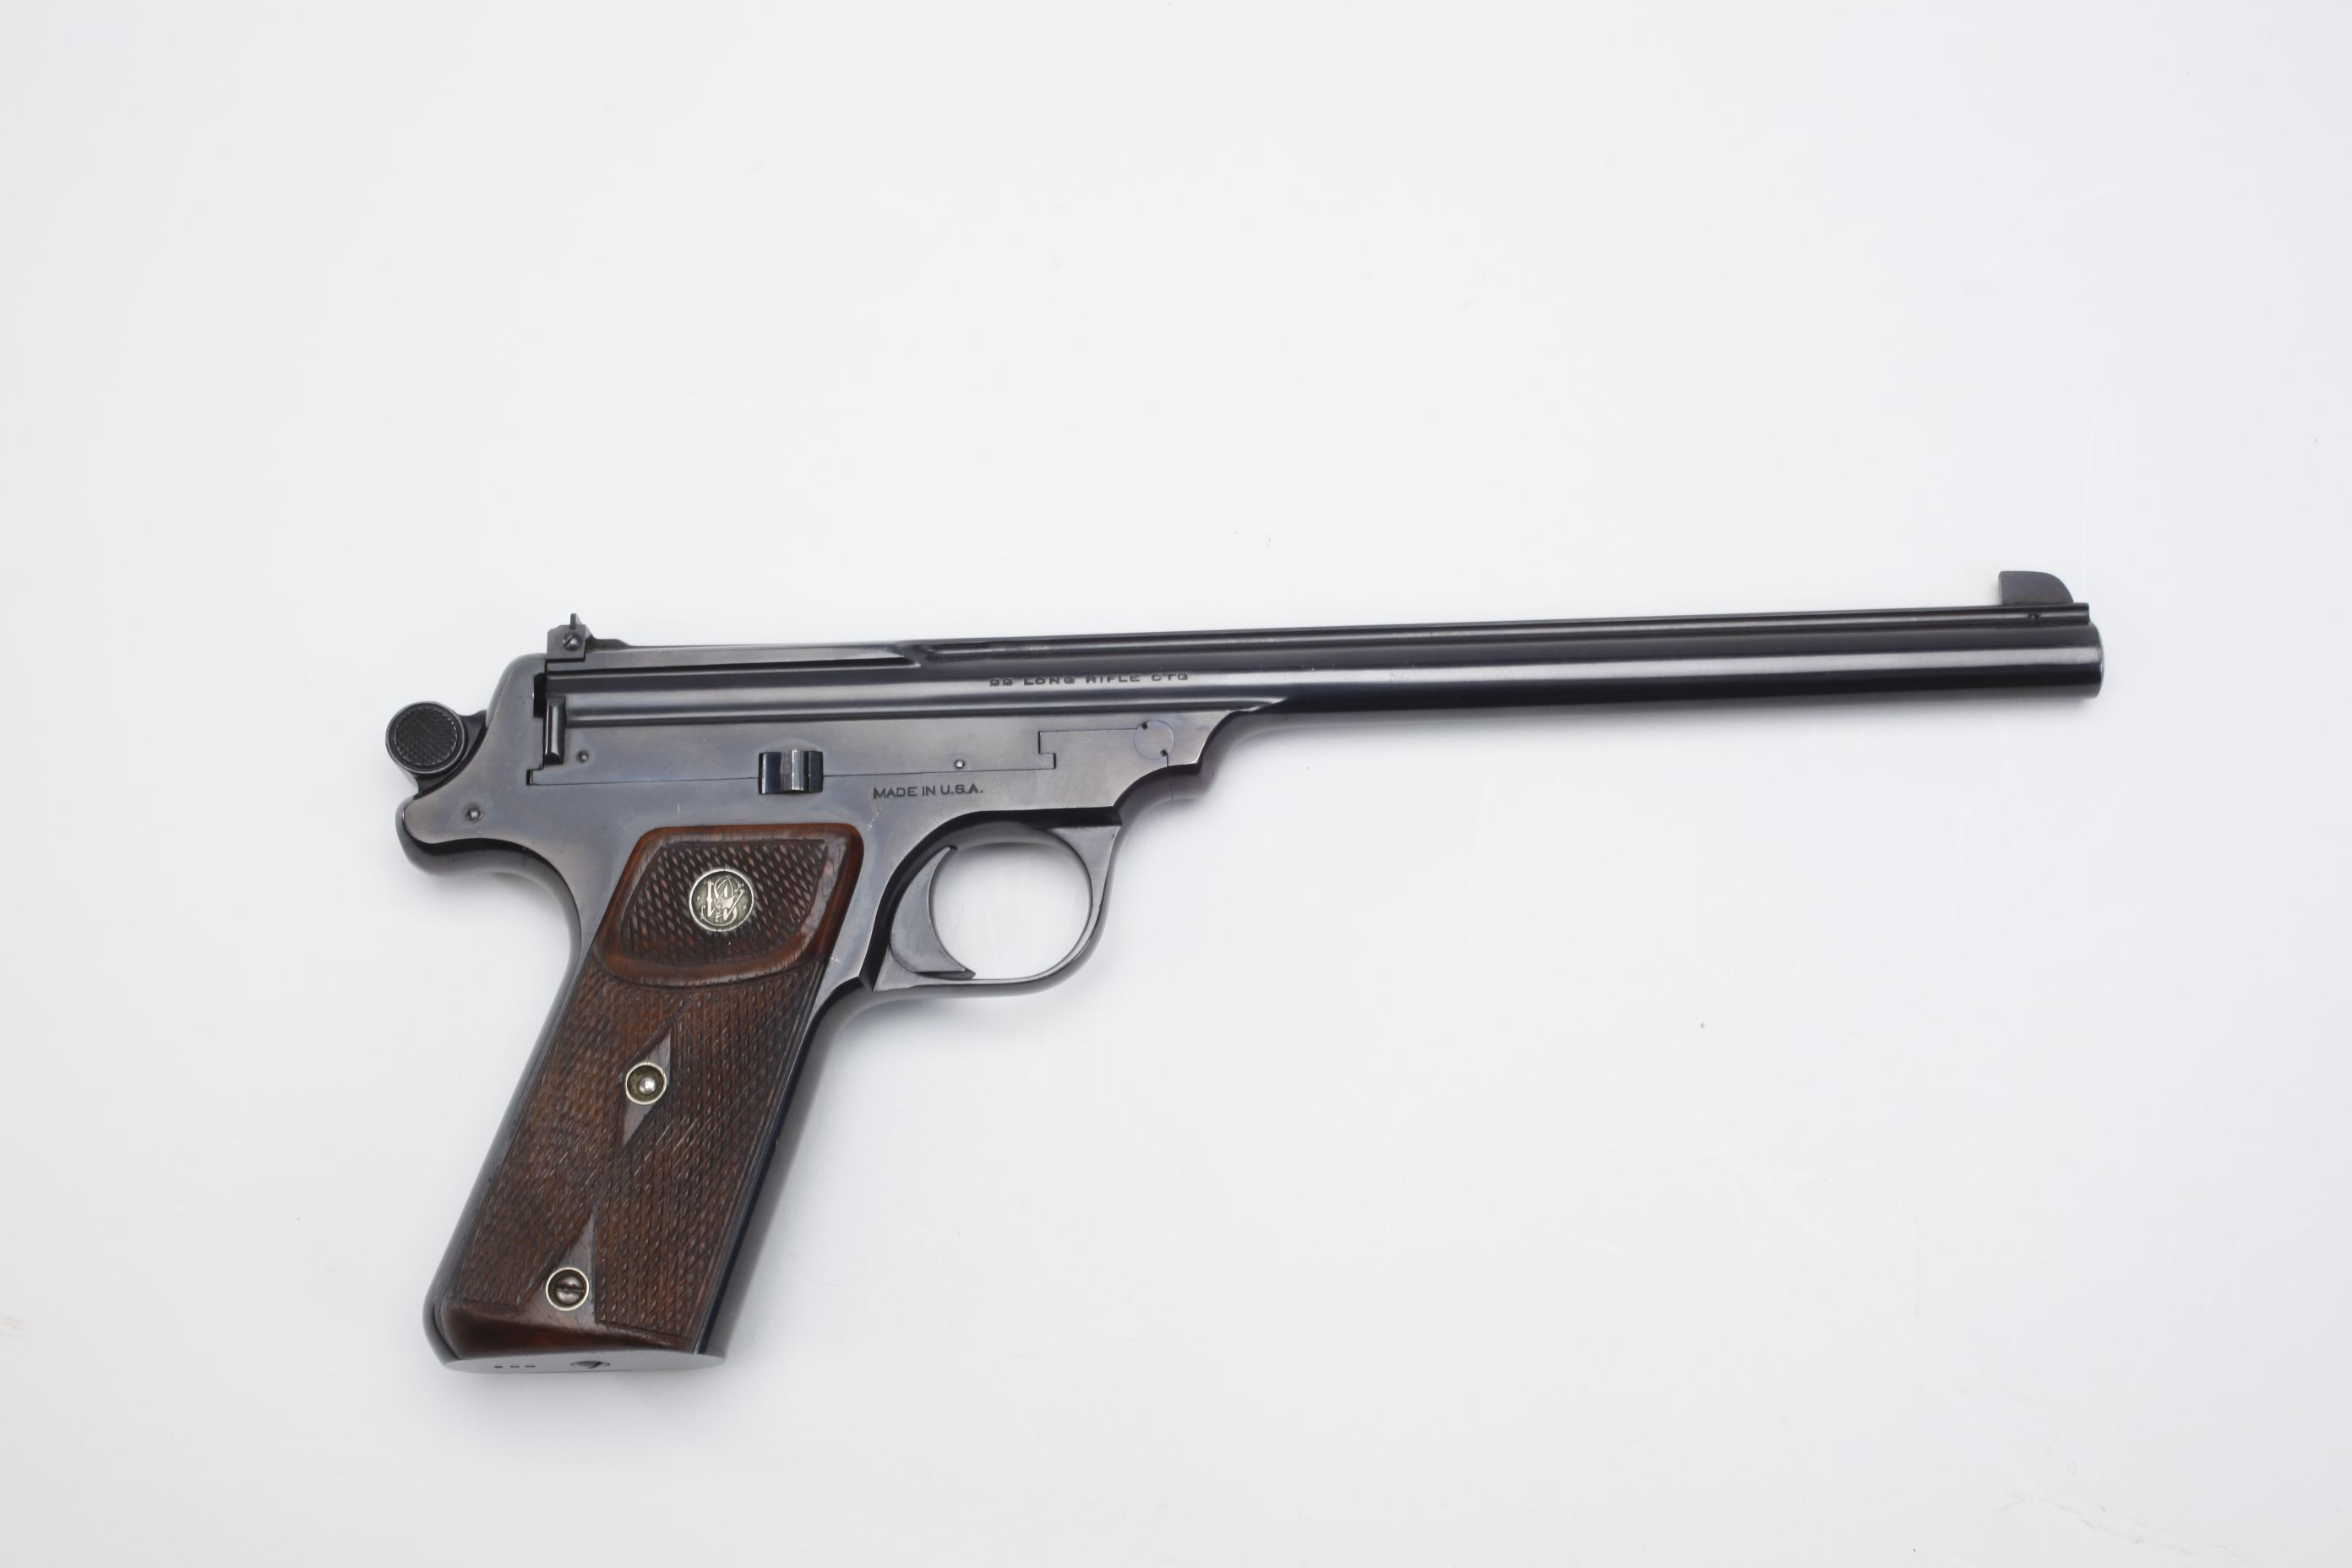 Smith & Wesson Straight Line Single Shot Pistol